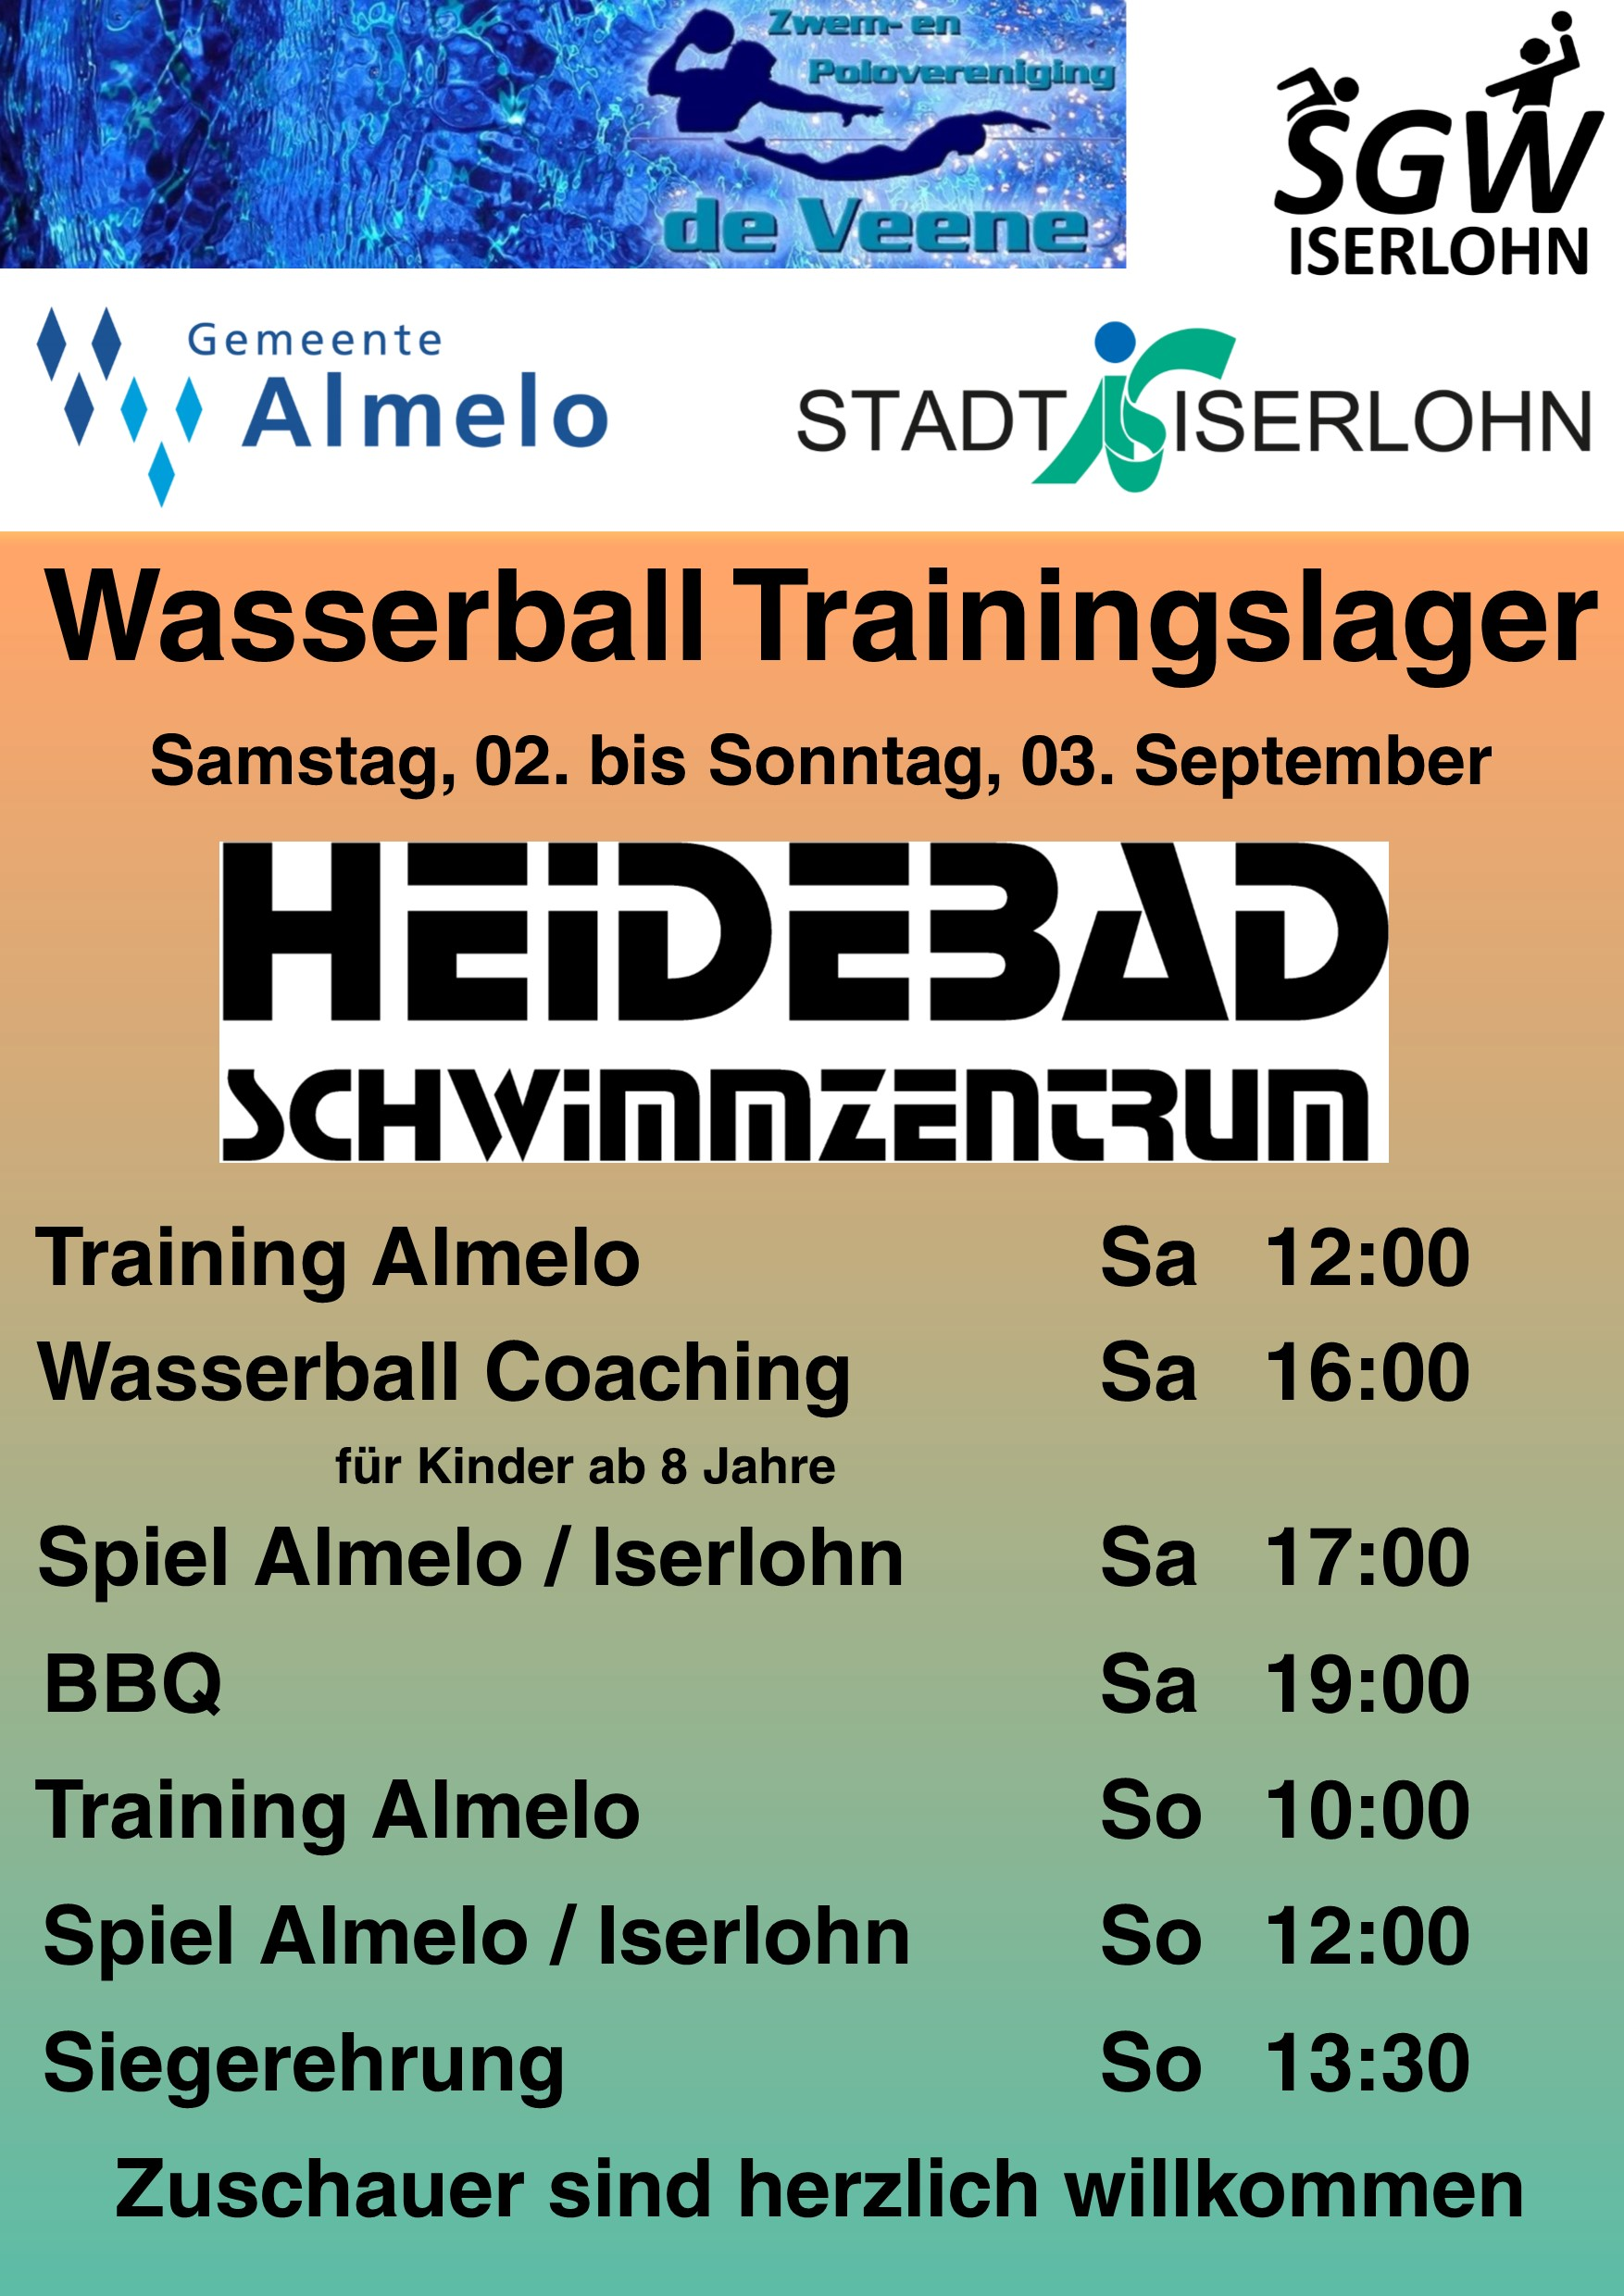 Wasserball Trainingslager